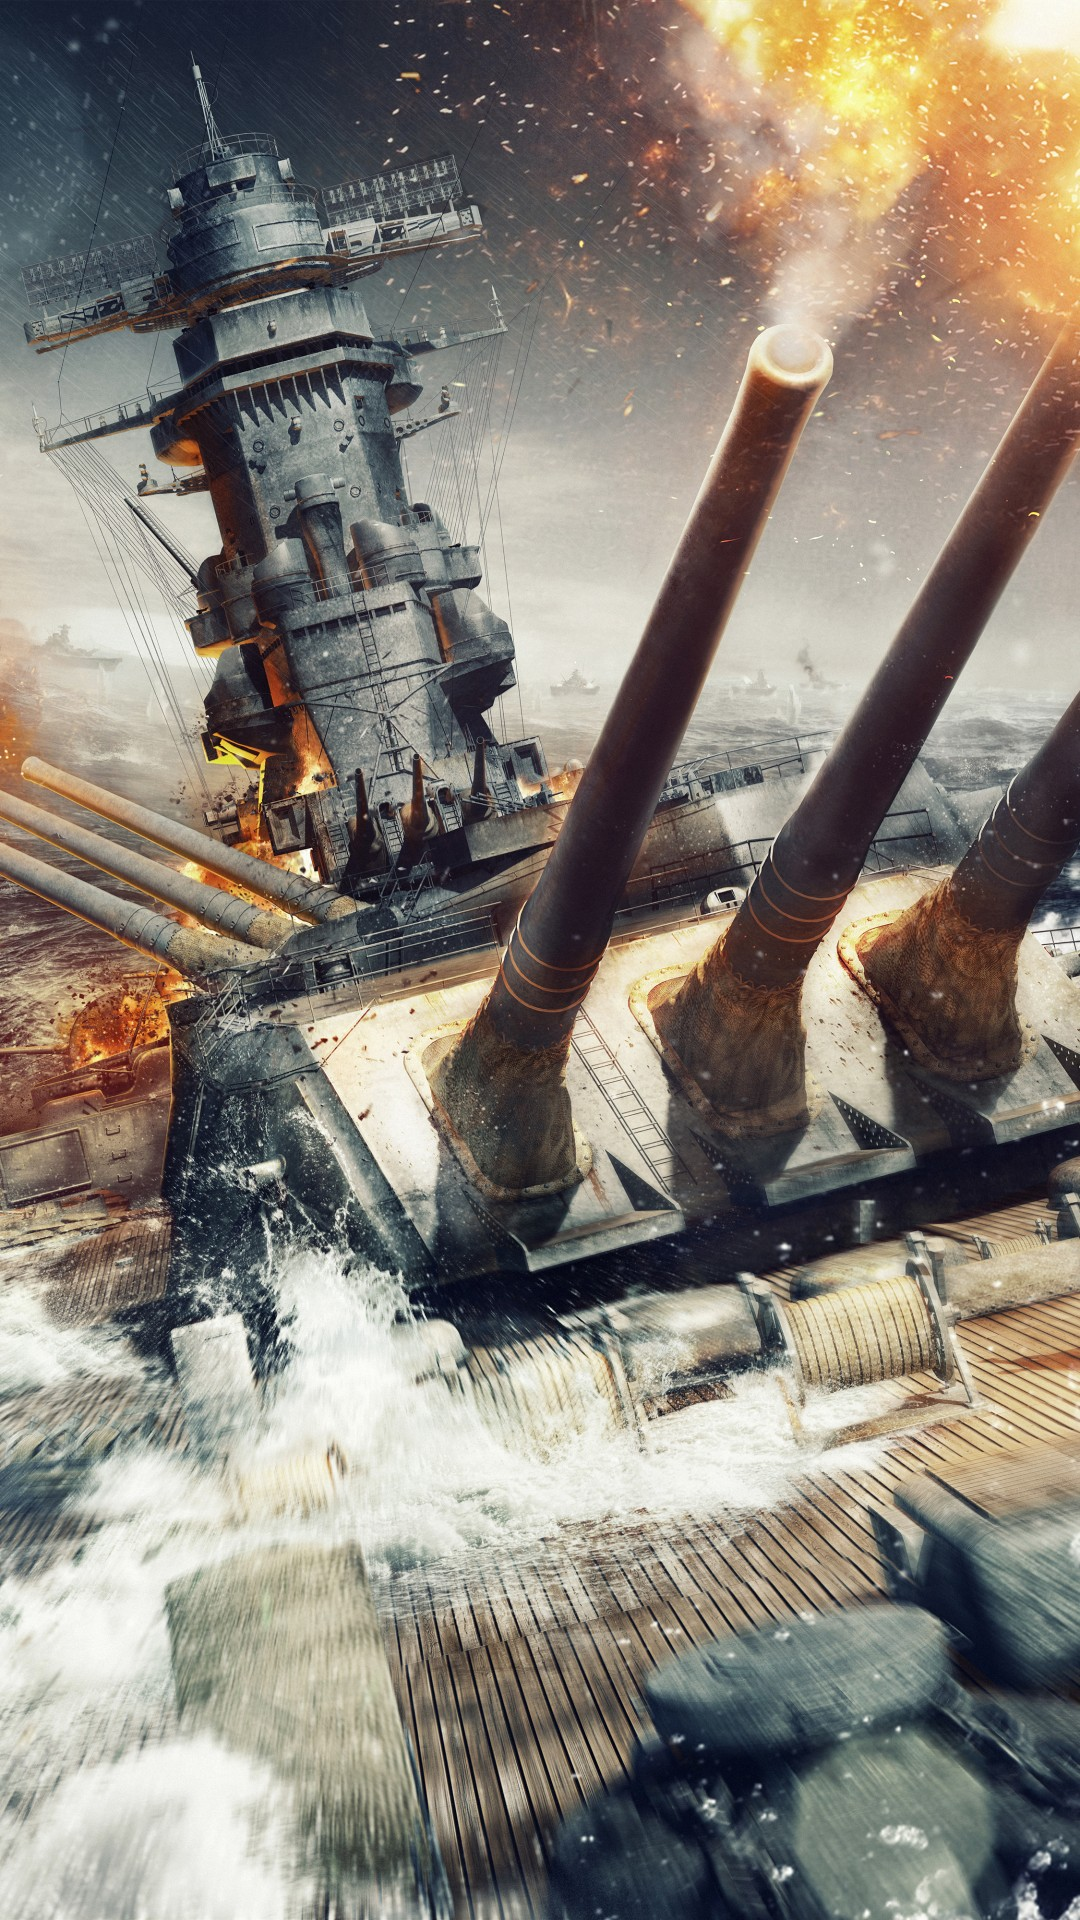 Wallpaper World of Warships game MMORPG simulator sea